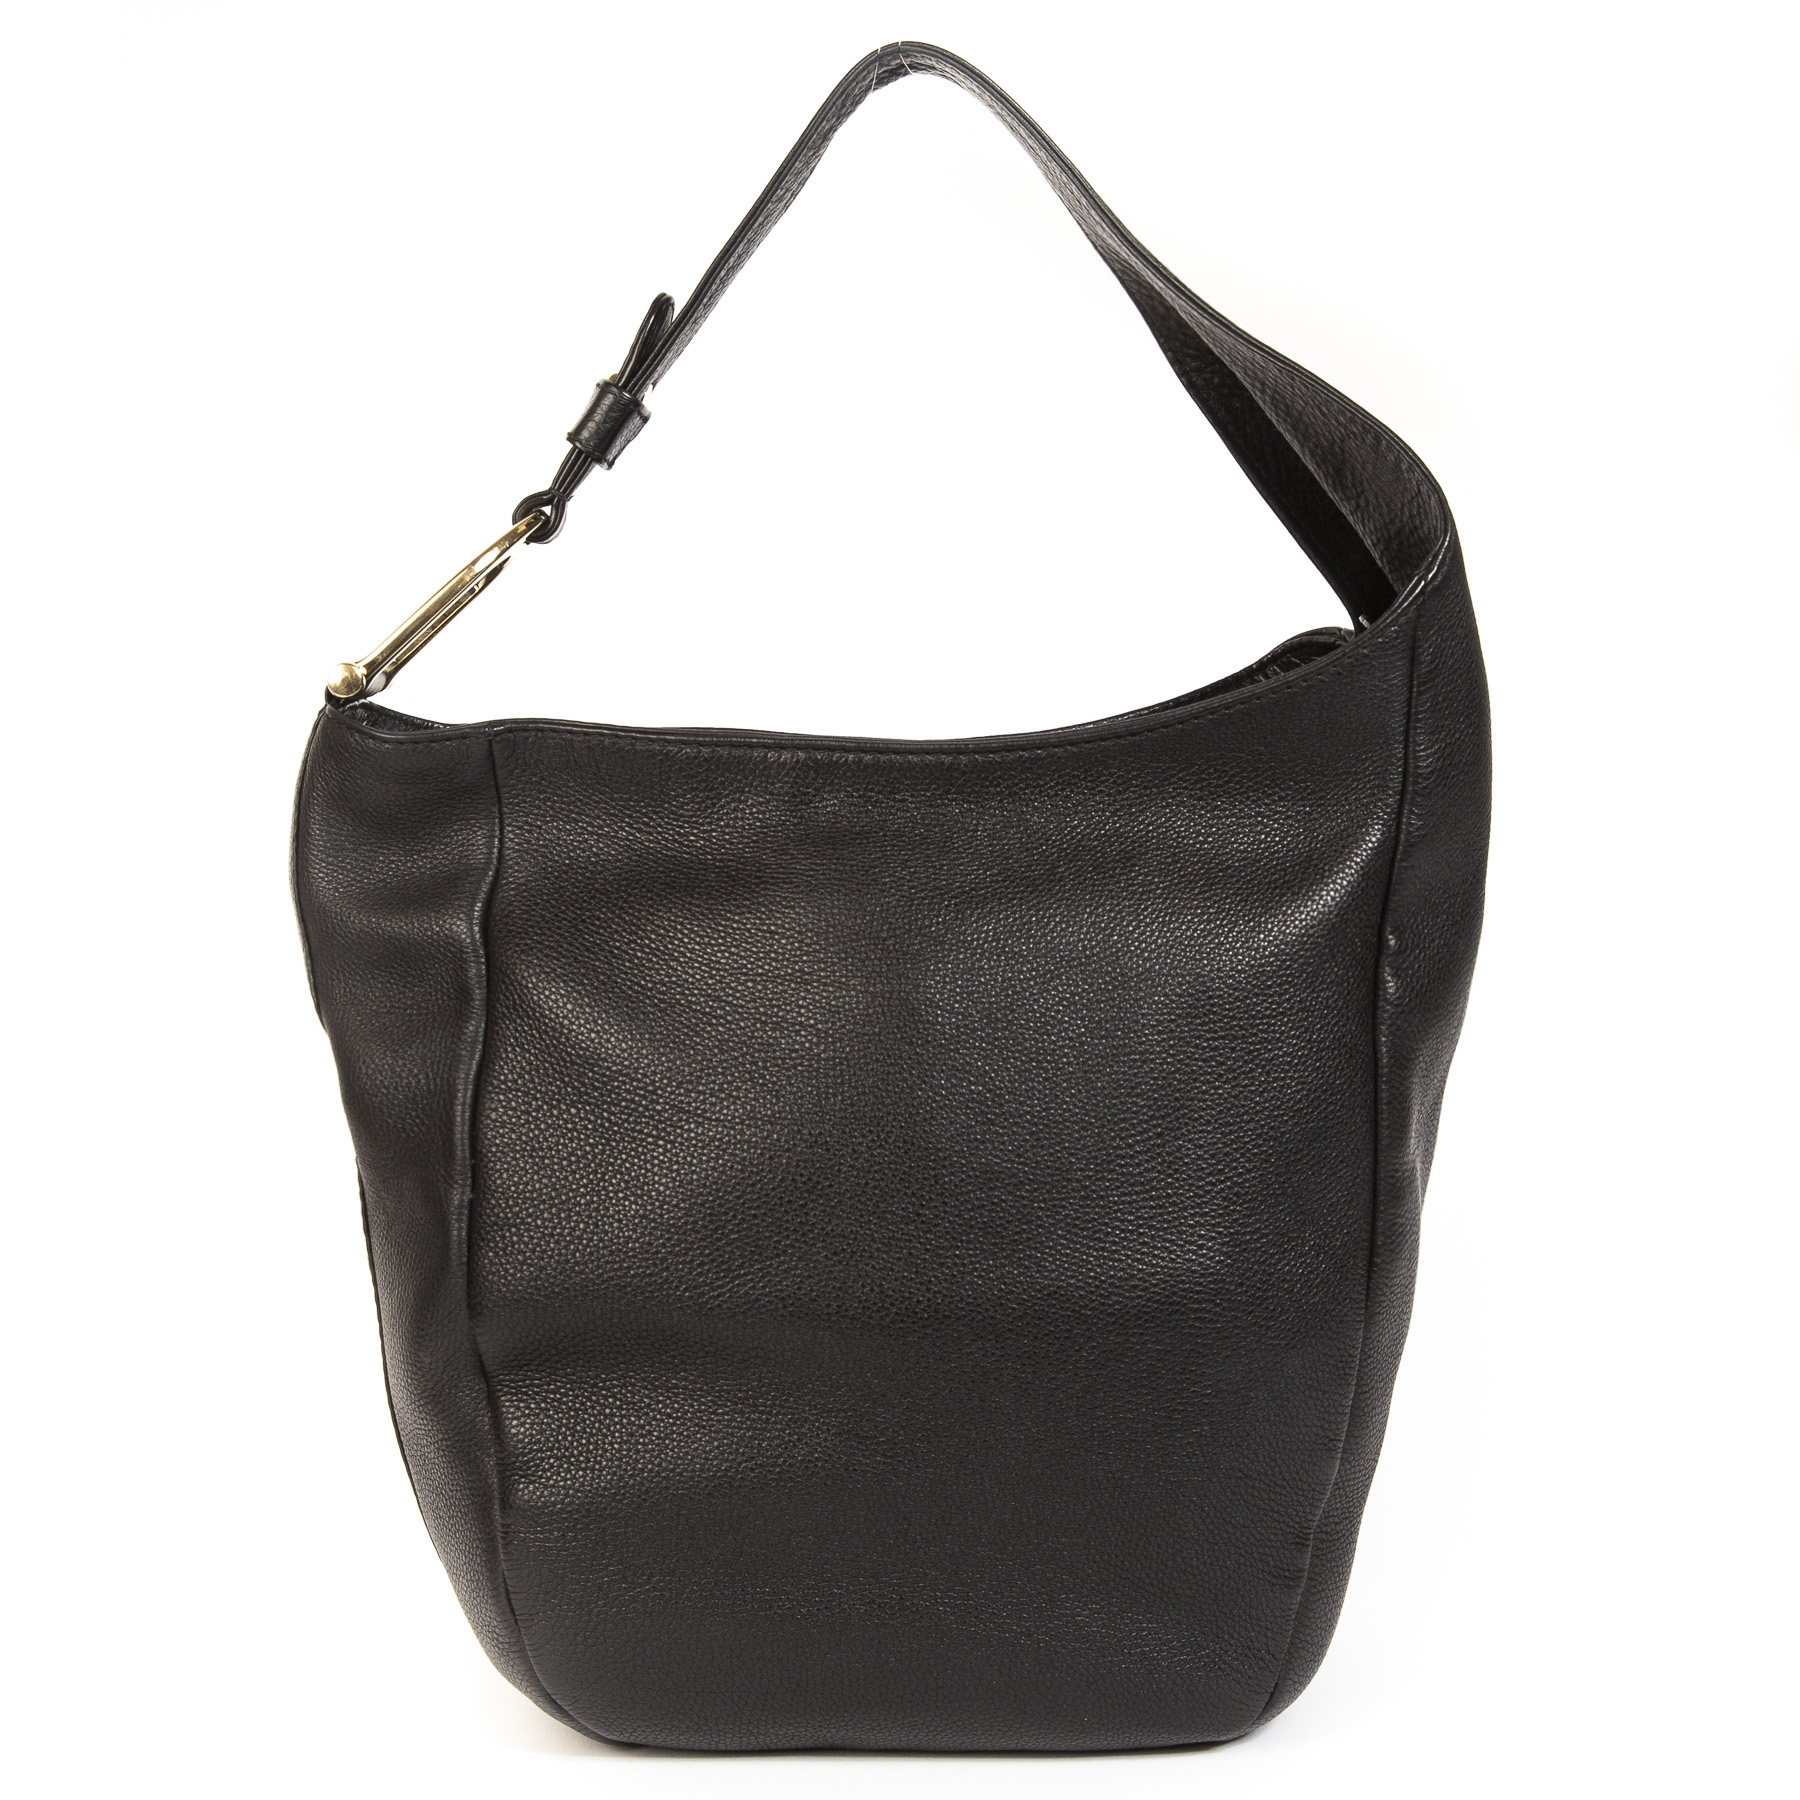 Gucci Black Greenwich Leather Hobo Large